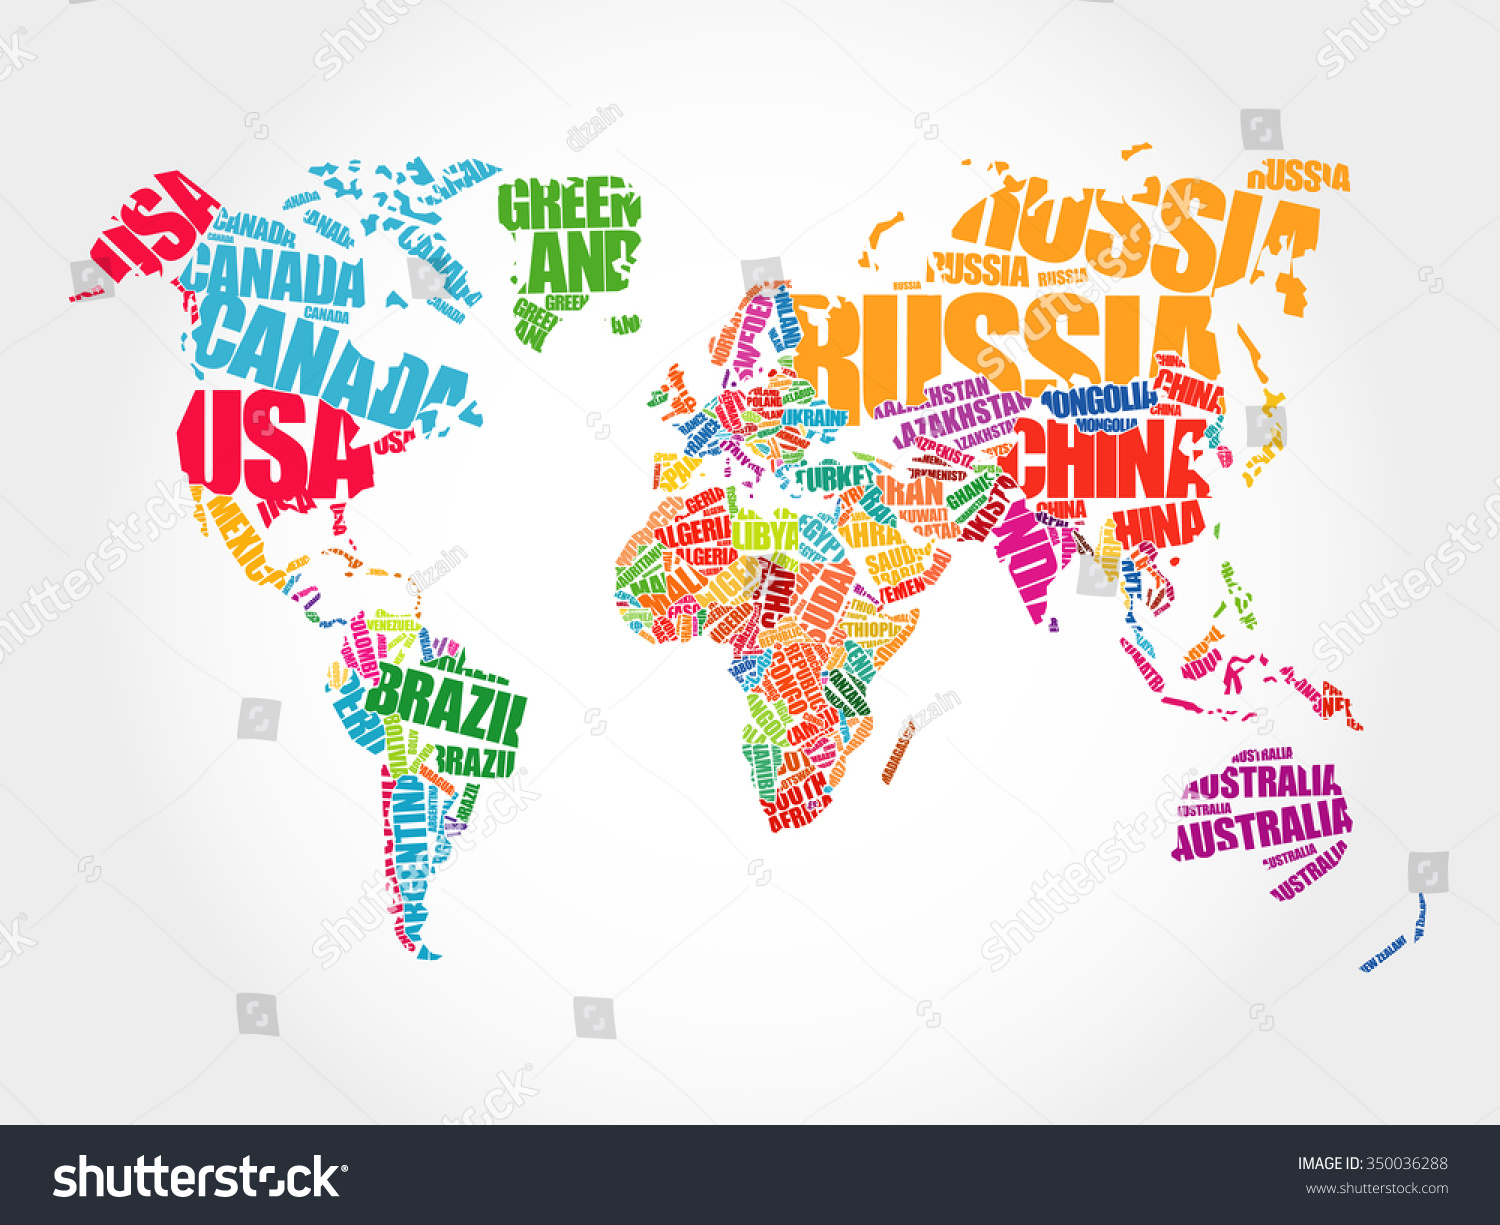 Royalty free world map in typography word cloud 350036288 stock world map in typography word cloud concept names of countries 350036288 gumiabroncs Image collections